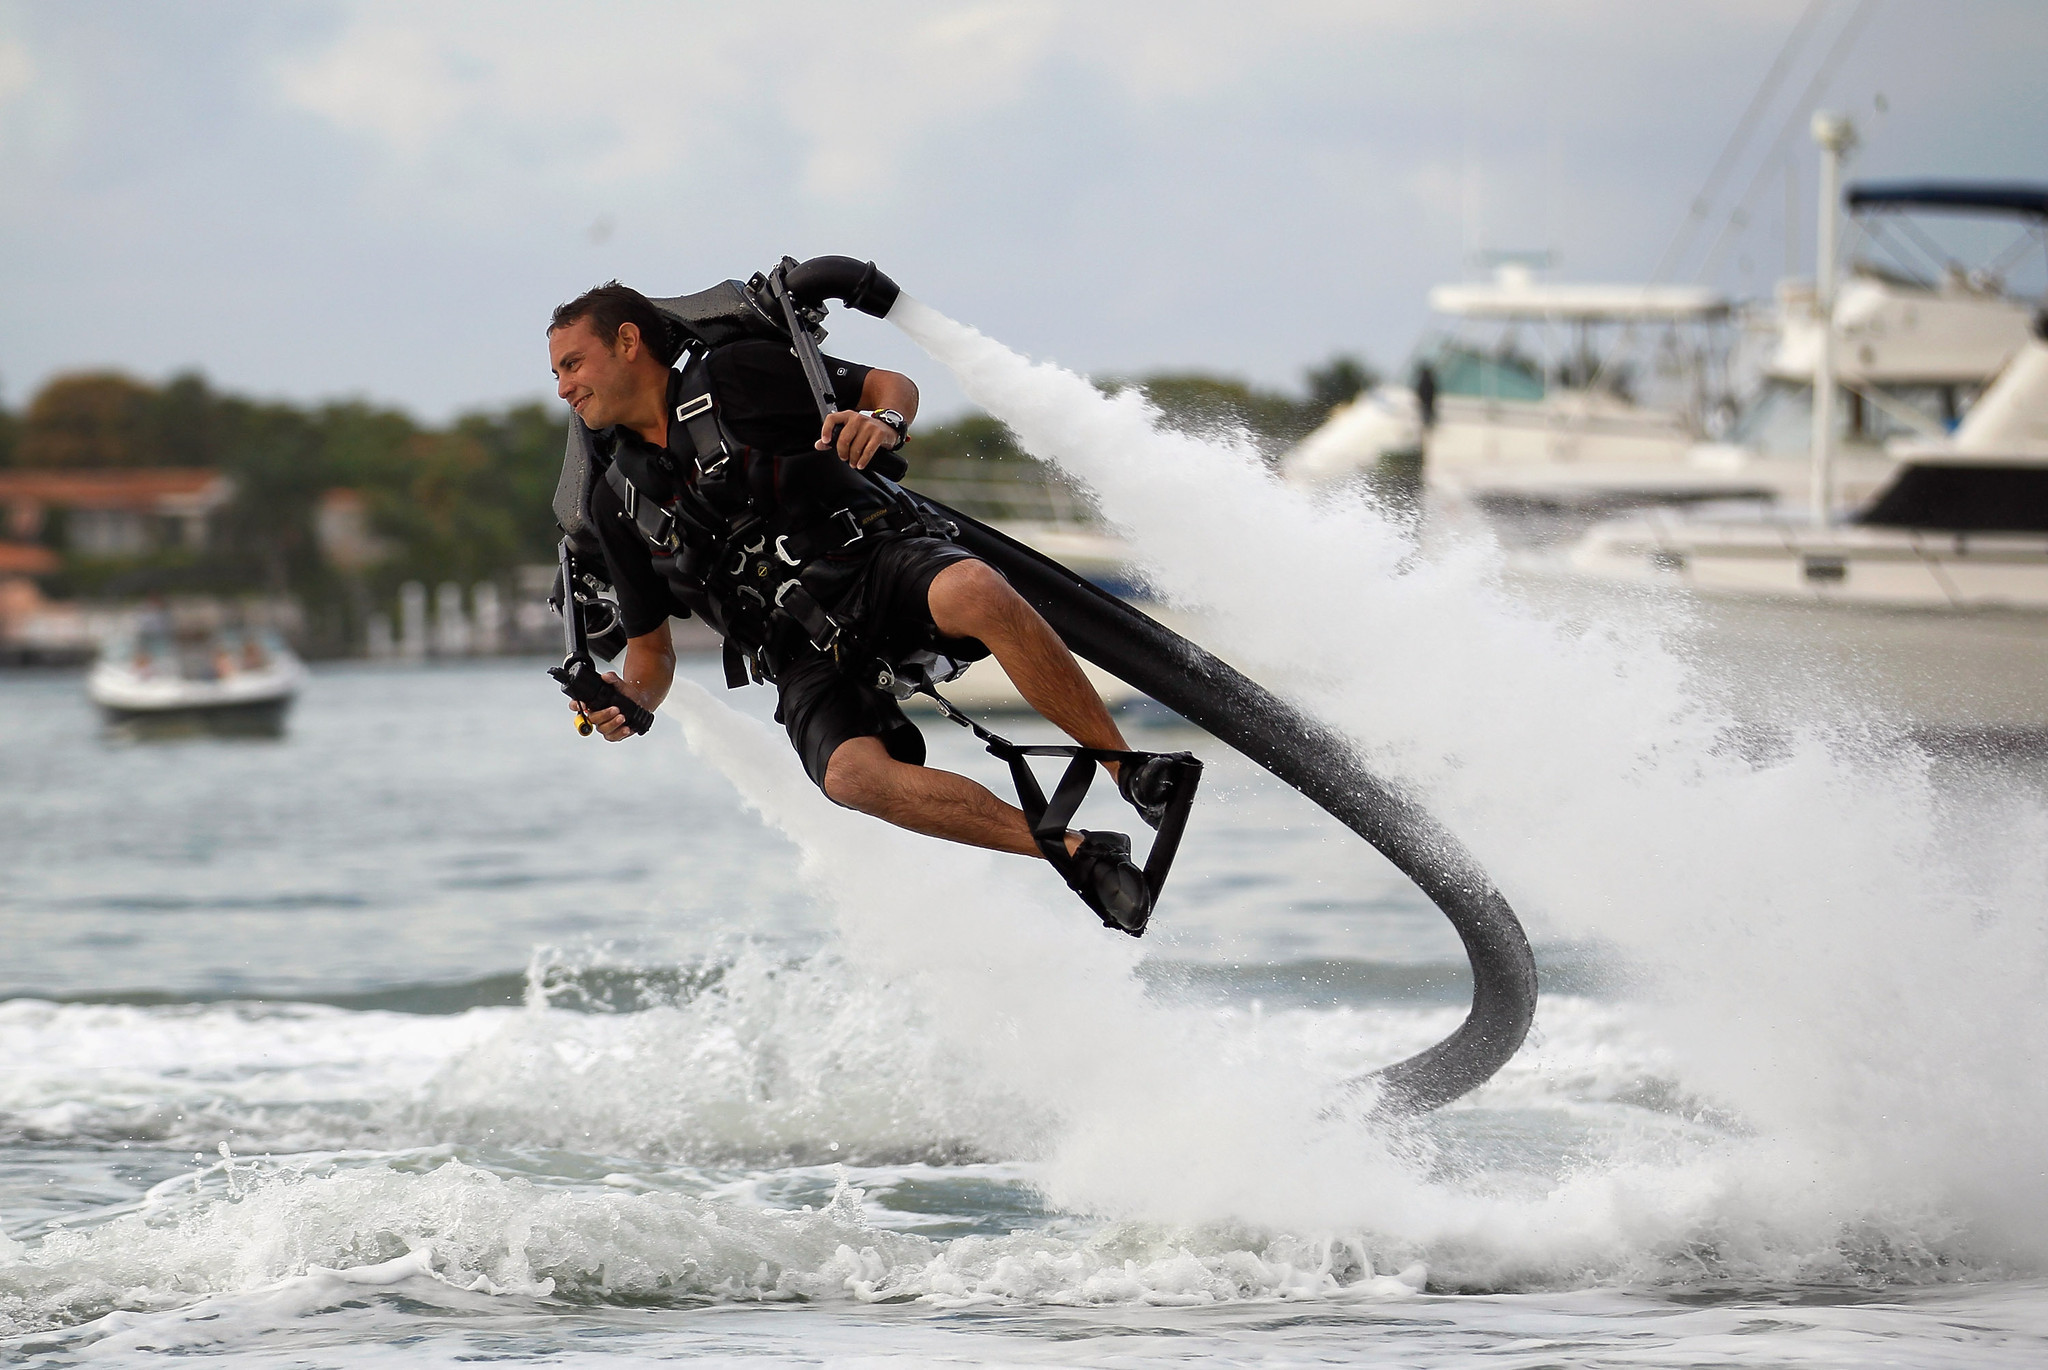 hydro chair water ski nursery rocking australia safety concerns spur new rules for jet packs in maryland baltimore sun